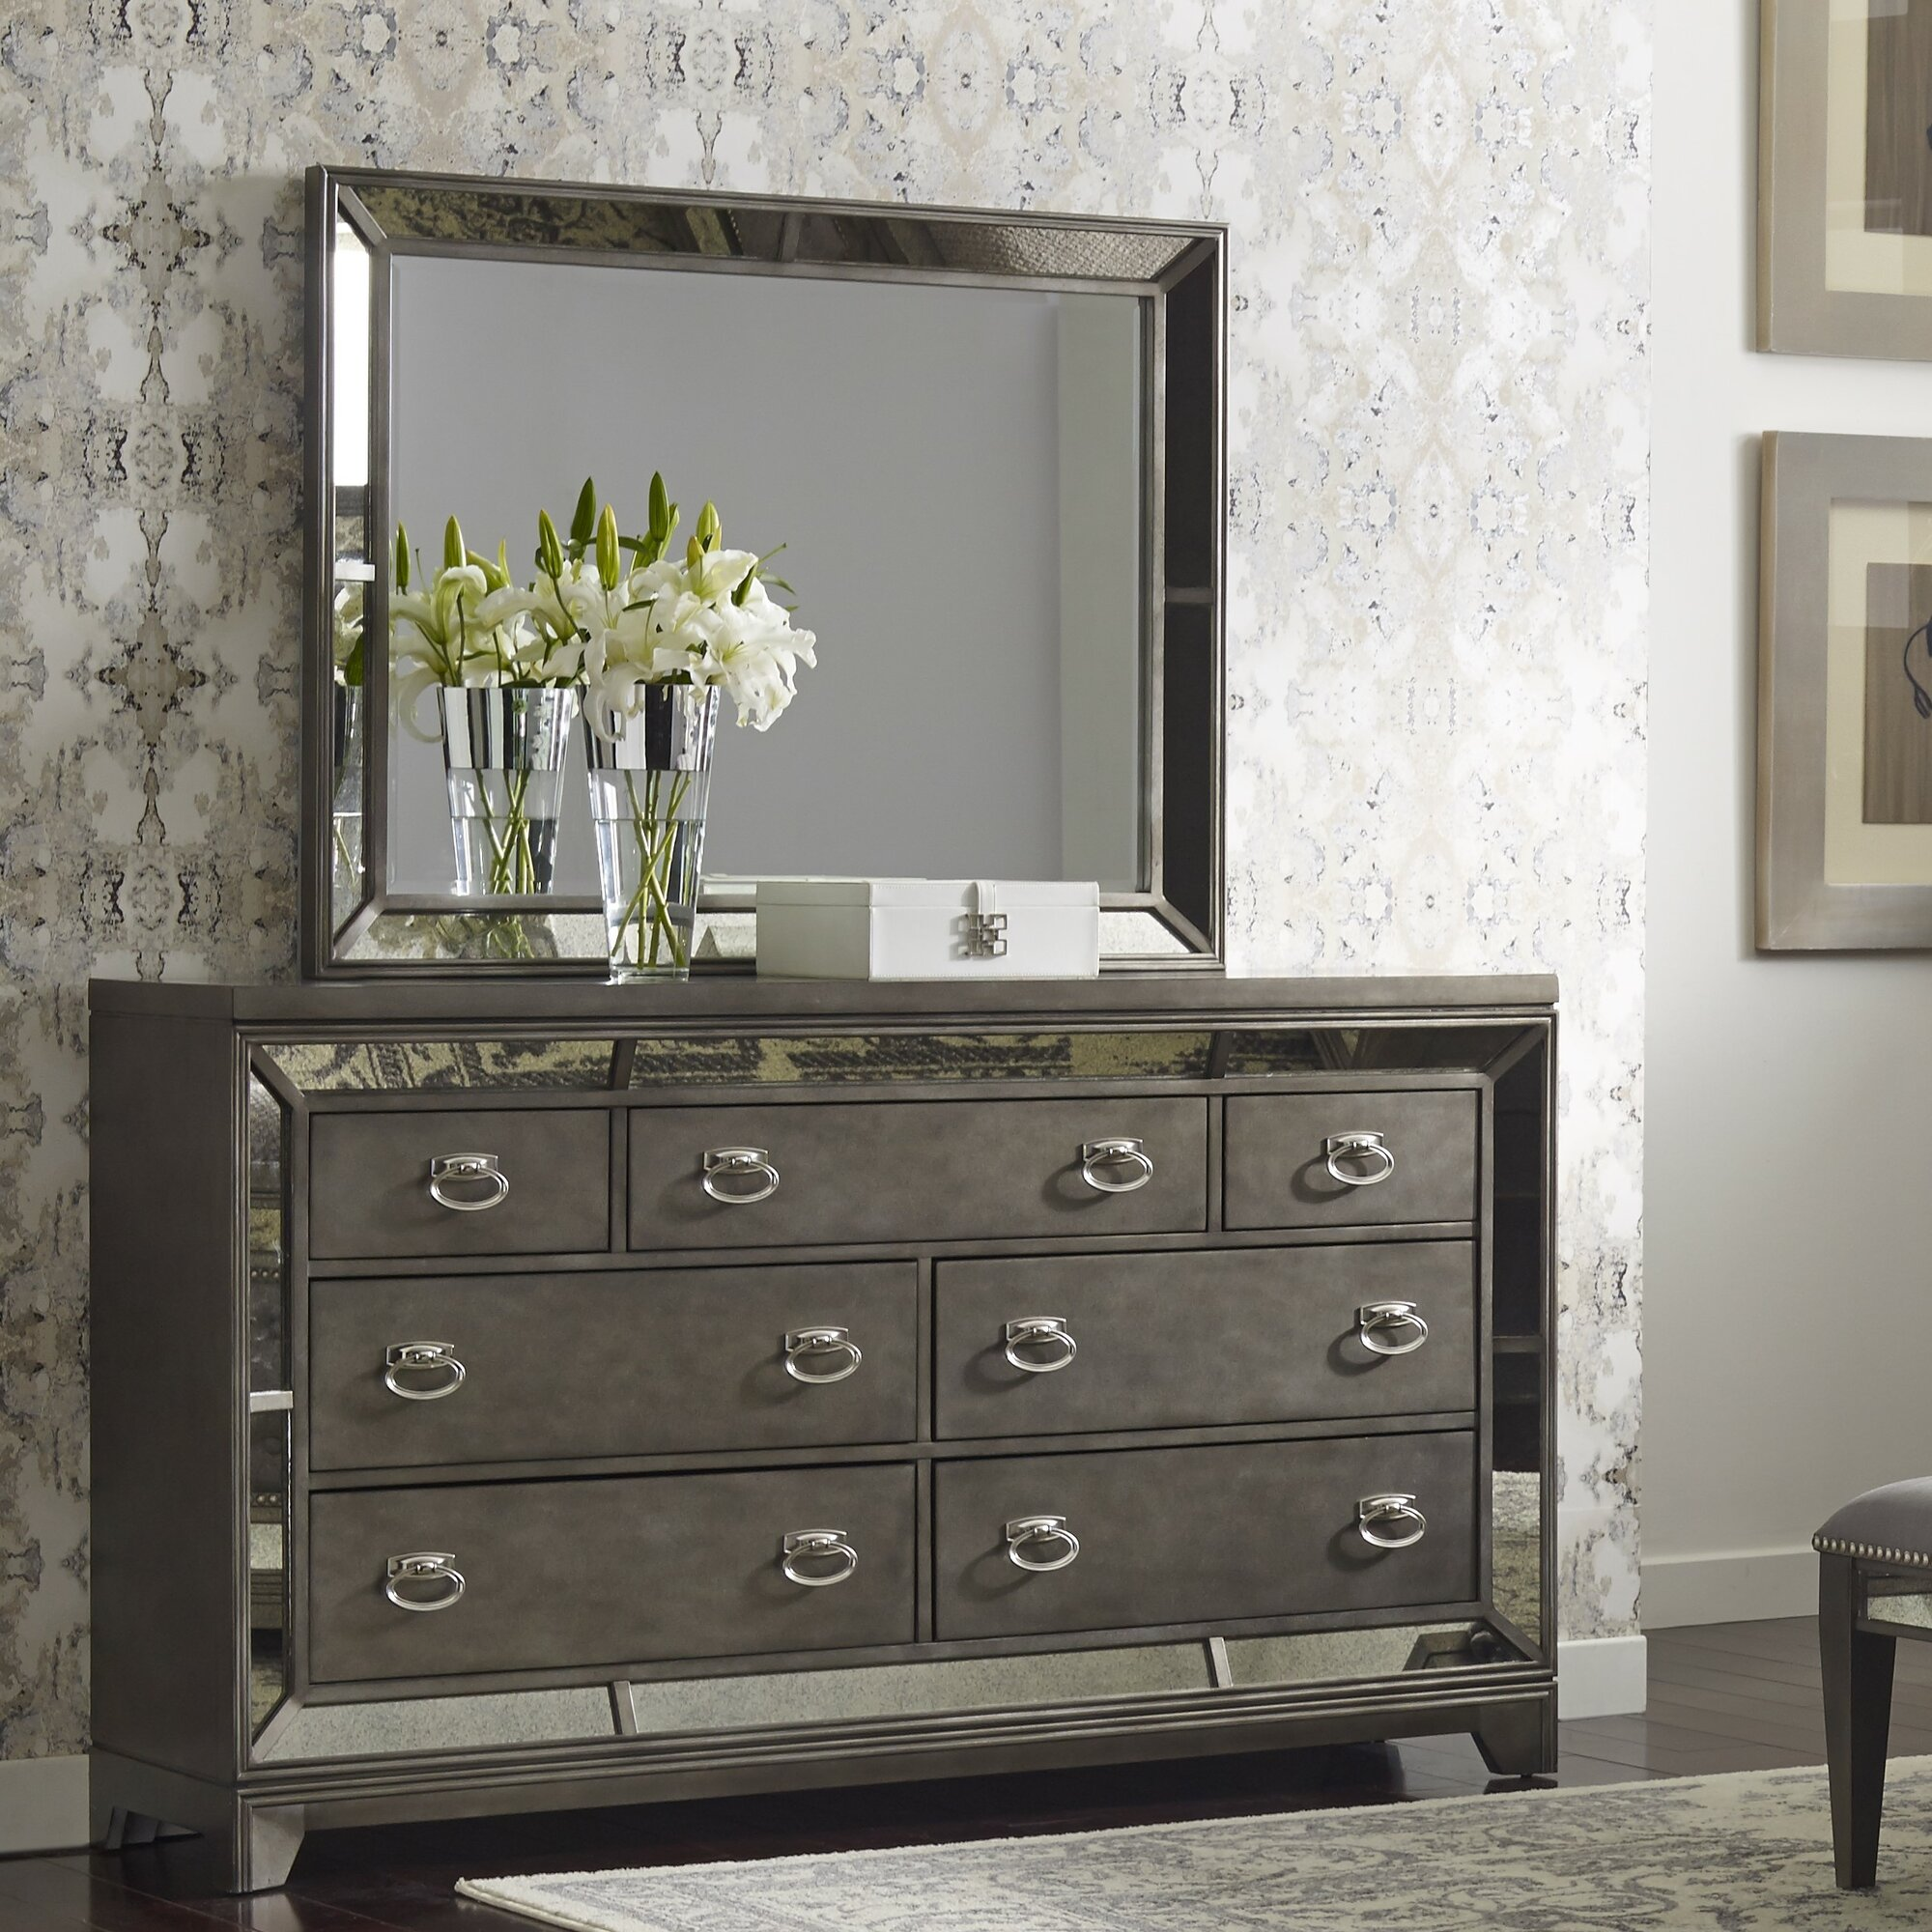 Willa Arlo Interiors Roxie 7 Drawer Dresser Mirror Reviews